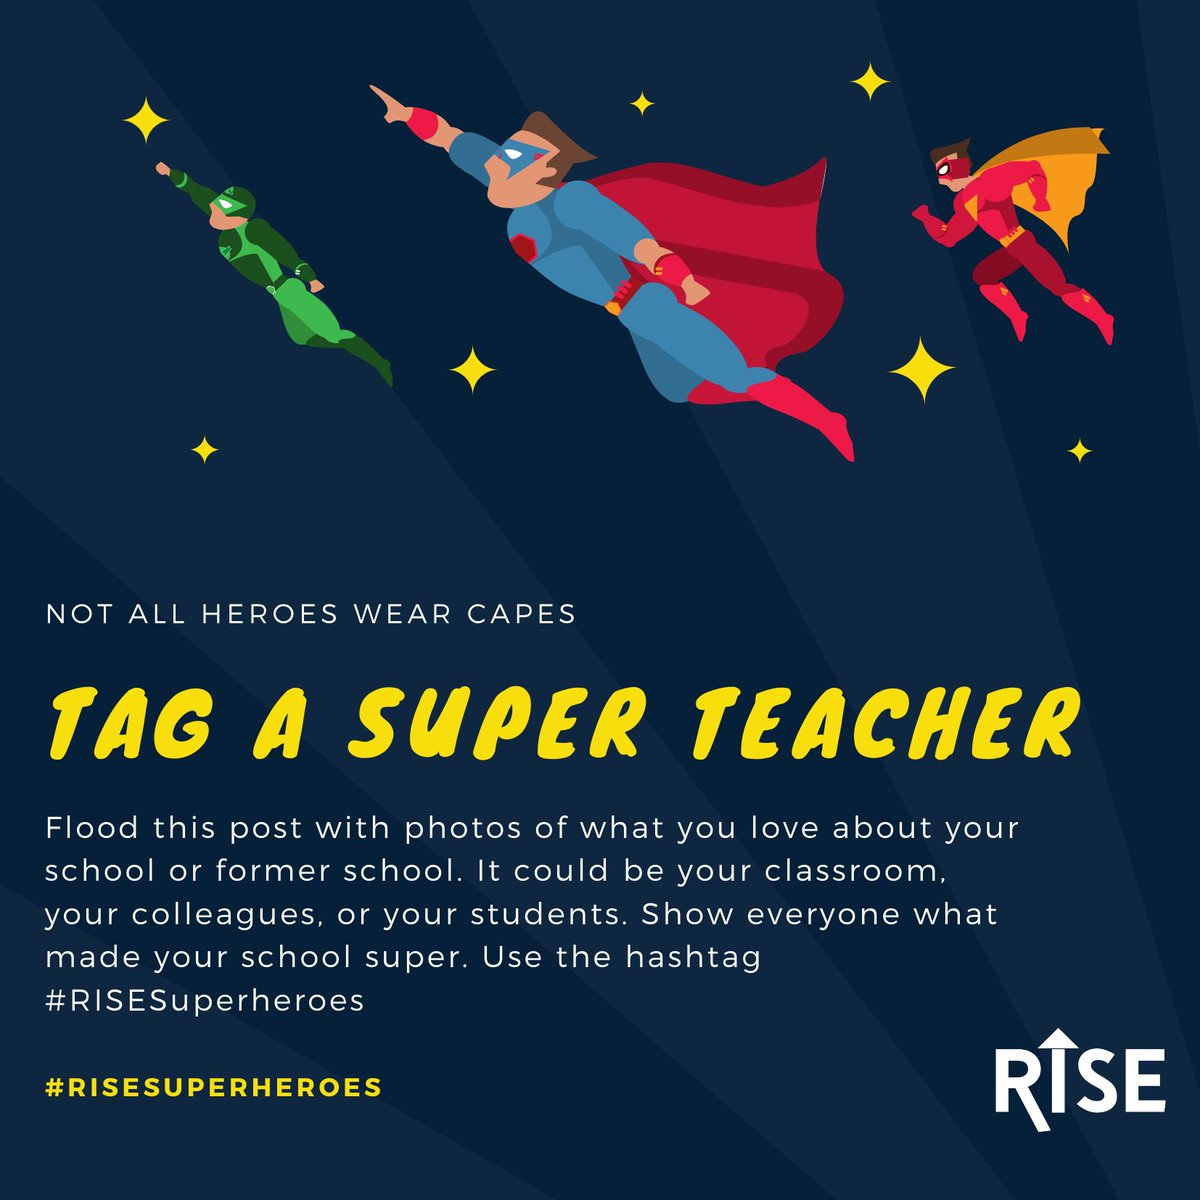 Flood this post with photos of what you love about your school or former school. It could be your classroom, your colleagues, or your students. Show everyone what made your school super. Use the hashtag #RISESuperheroes